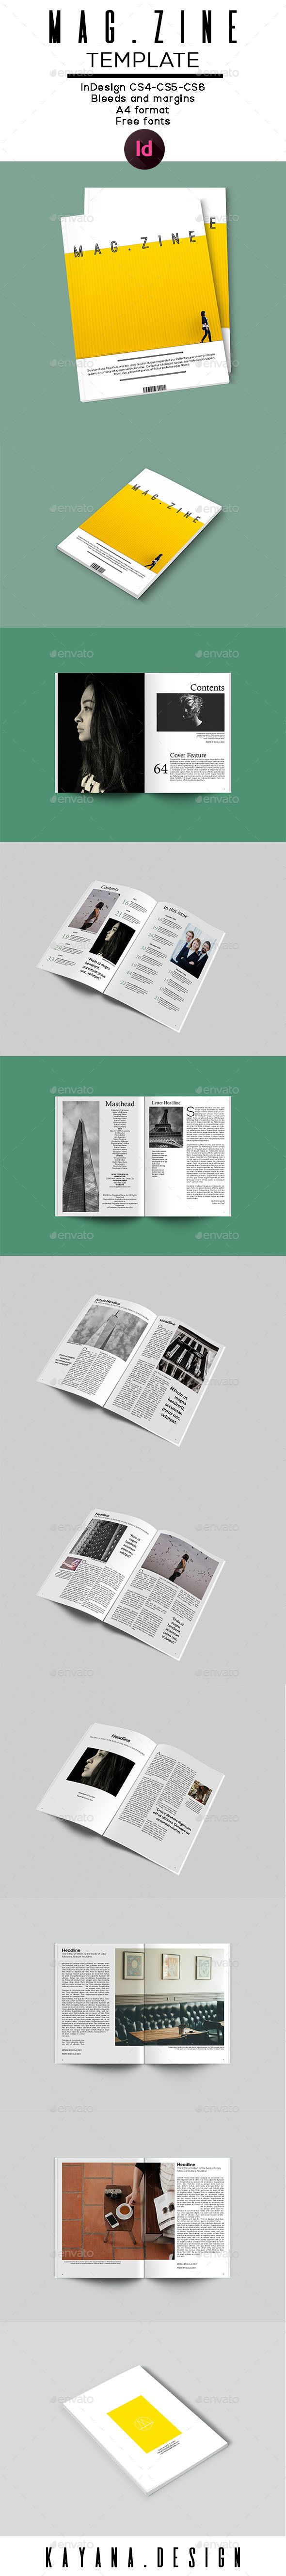 Mag.zine A4 Magazine Template | Zine, A4 and Template